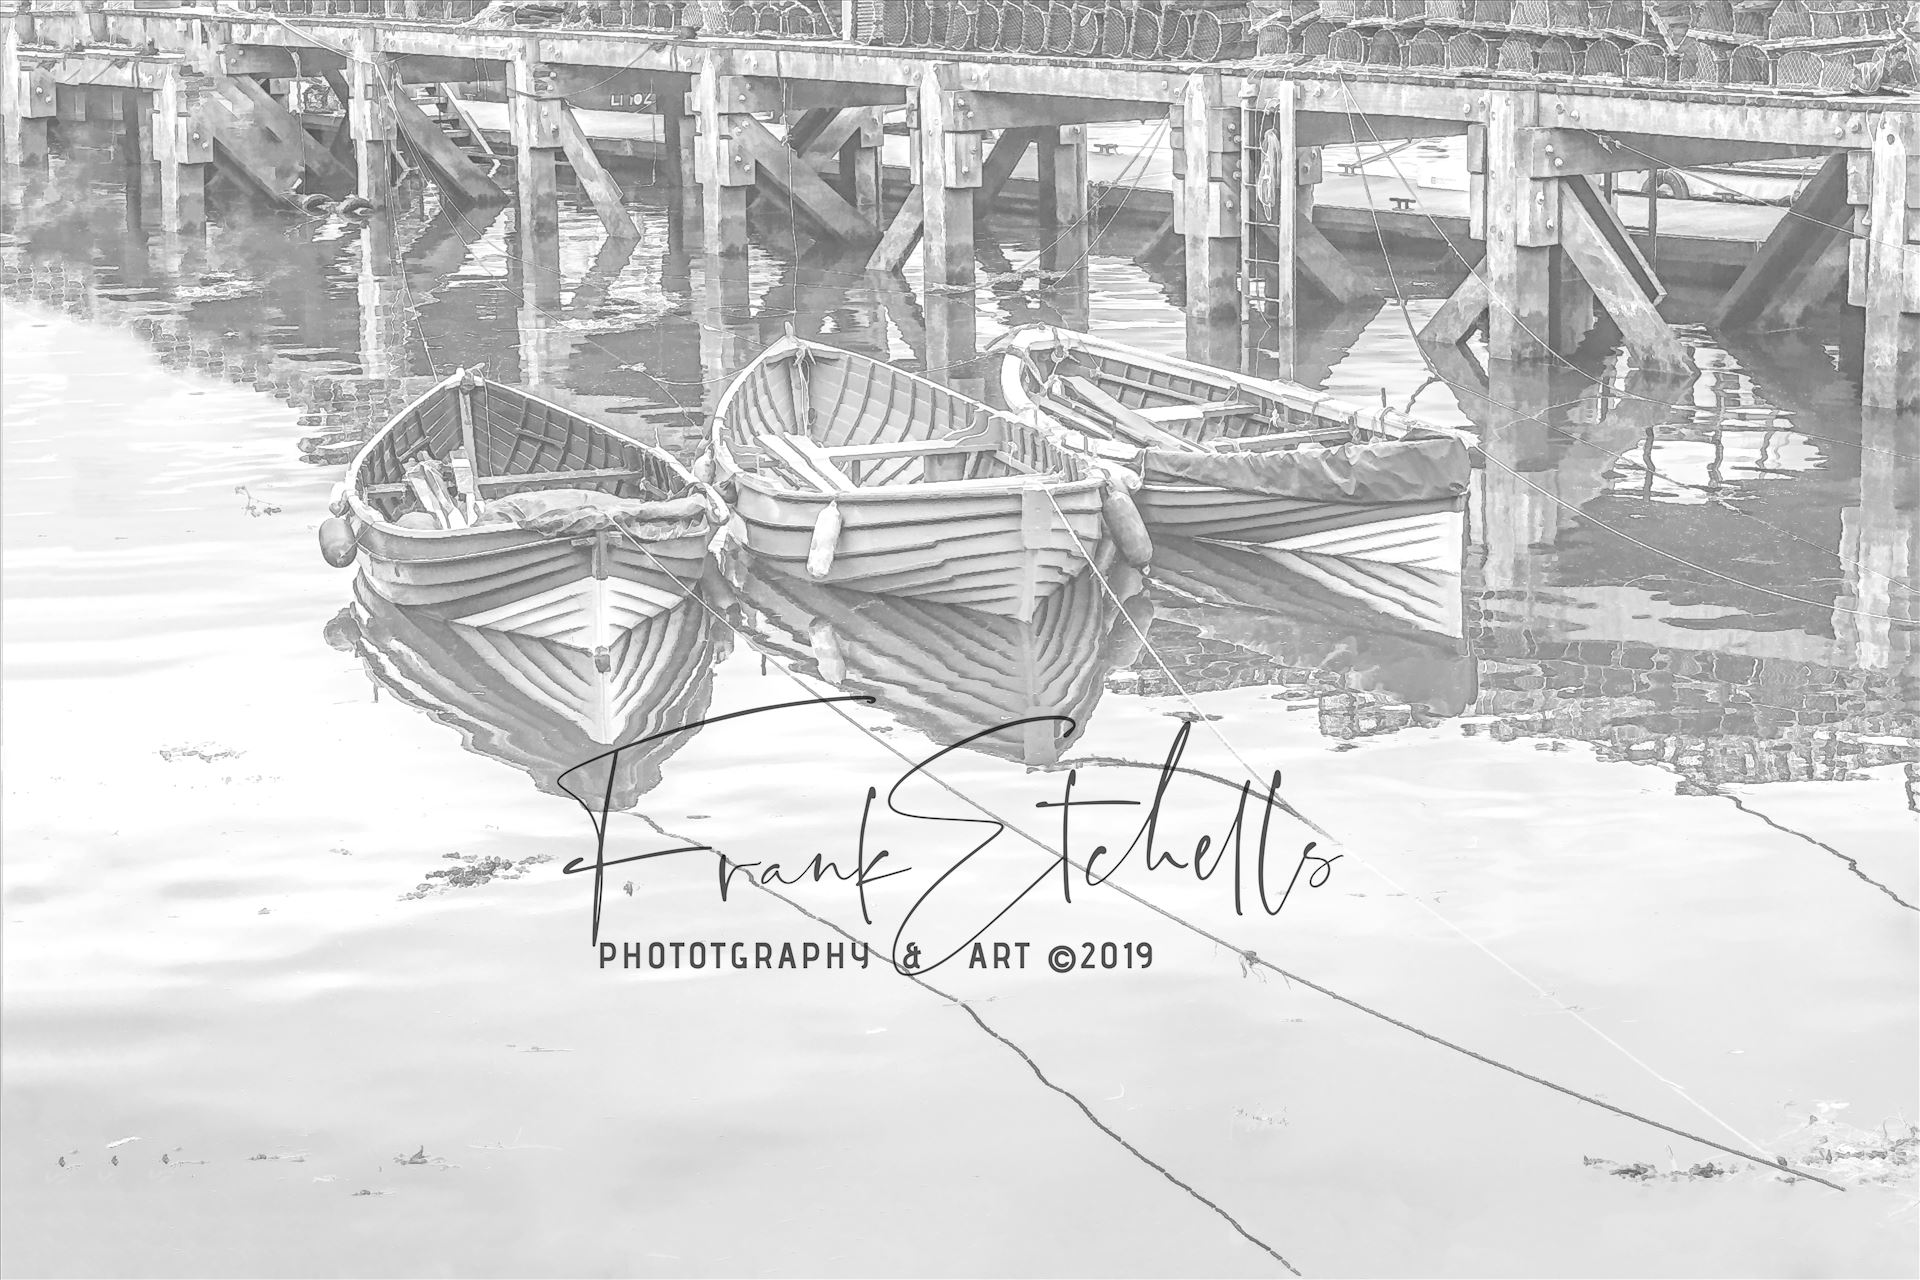 Three Tethered Boats Whitby. Edit; Pencil 1 - 'Three Tethered Boats, Whitby' to portray the boats as light pencil sketch and light reflections to the surface of the water. *Slight variation to 'Pencil 2'* by Frank Etchells Photography